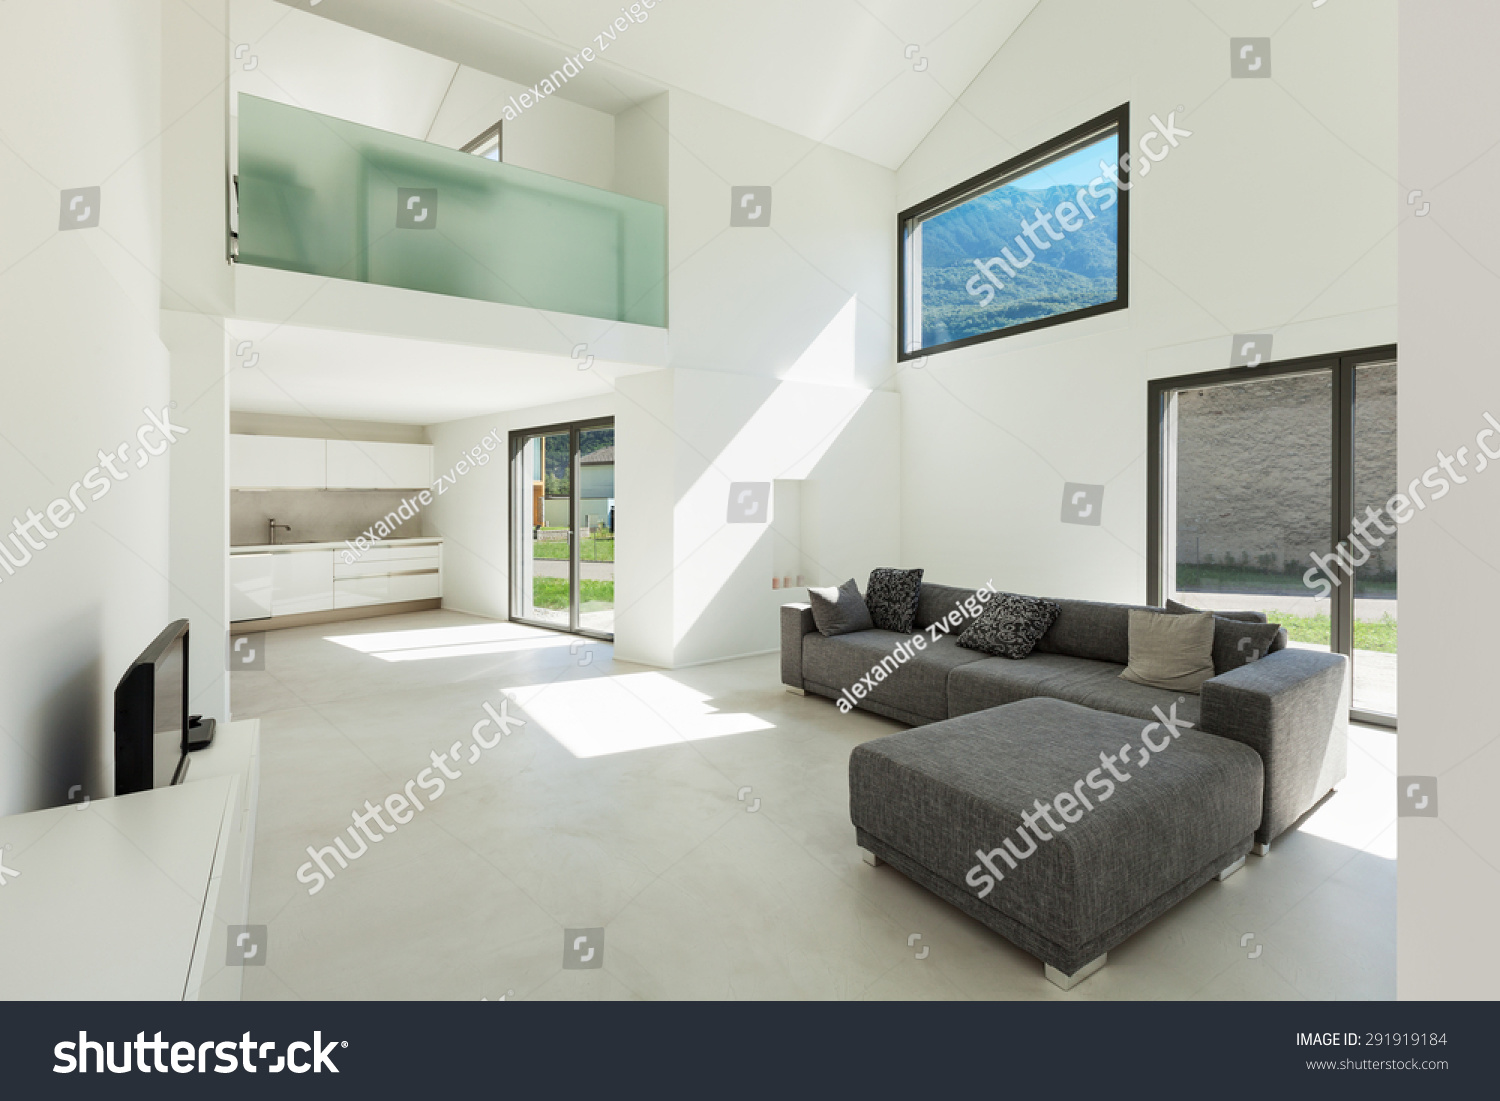 Architecture Interior Modern House Living Room Stock Photo (Royalty ...